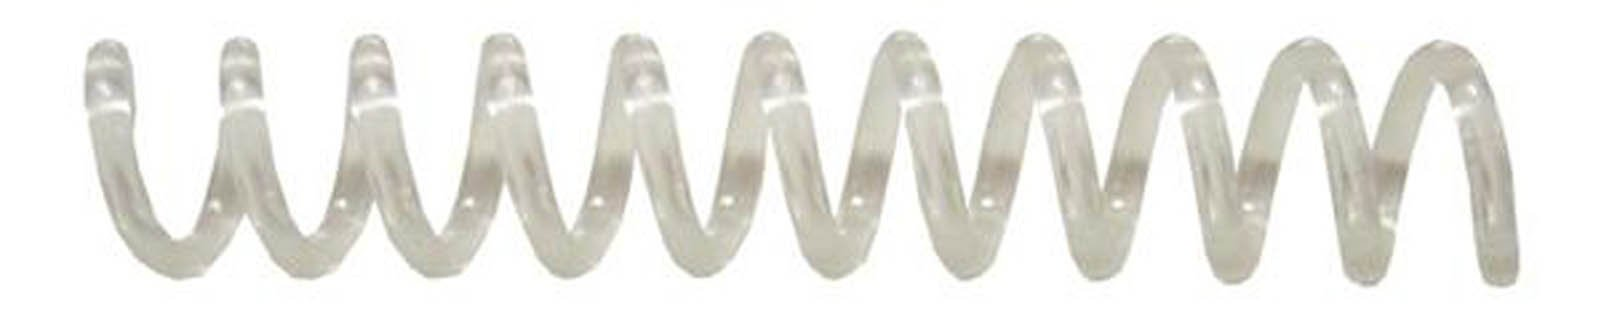 7mm (9/32) Clear Coil Bindings (Qty 100) Color: Clear, Model: , Office/School Supply Store